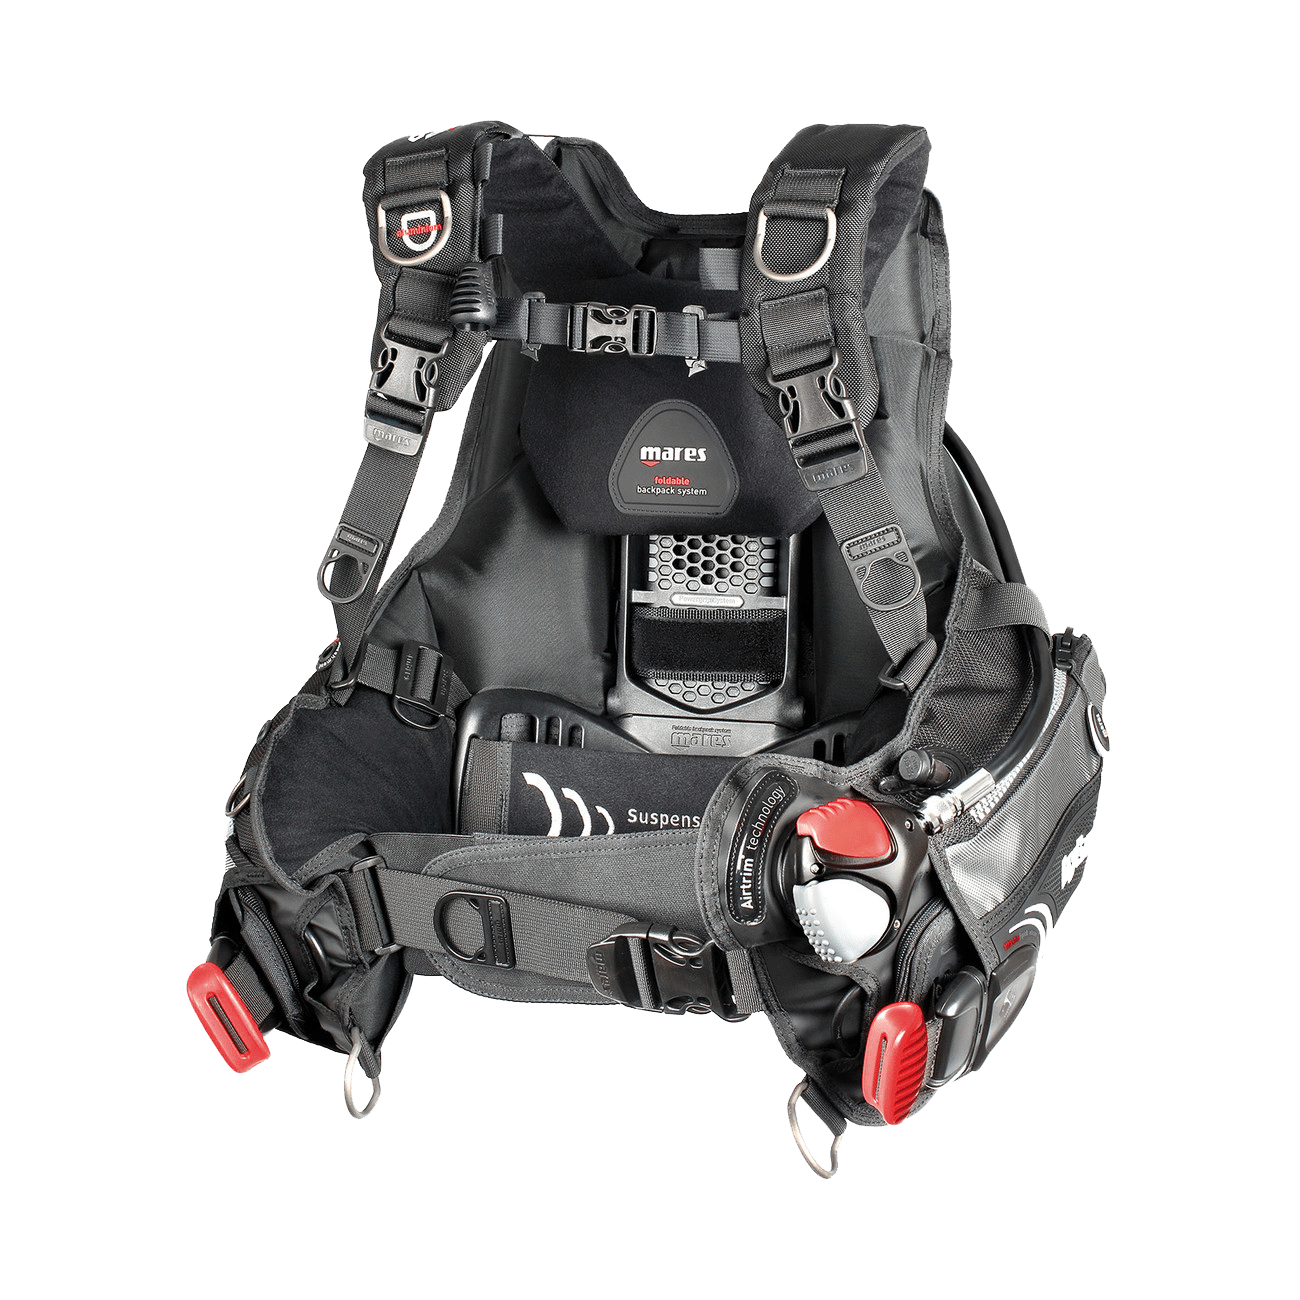 Mares Hybrid Airtrim BCD | Mares BCD | Mares Singapore